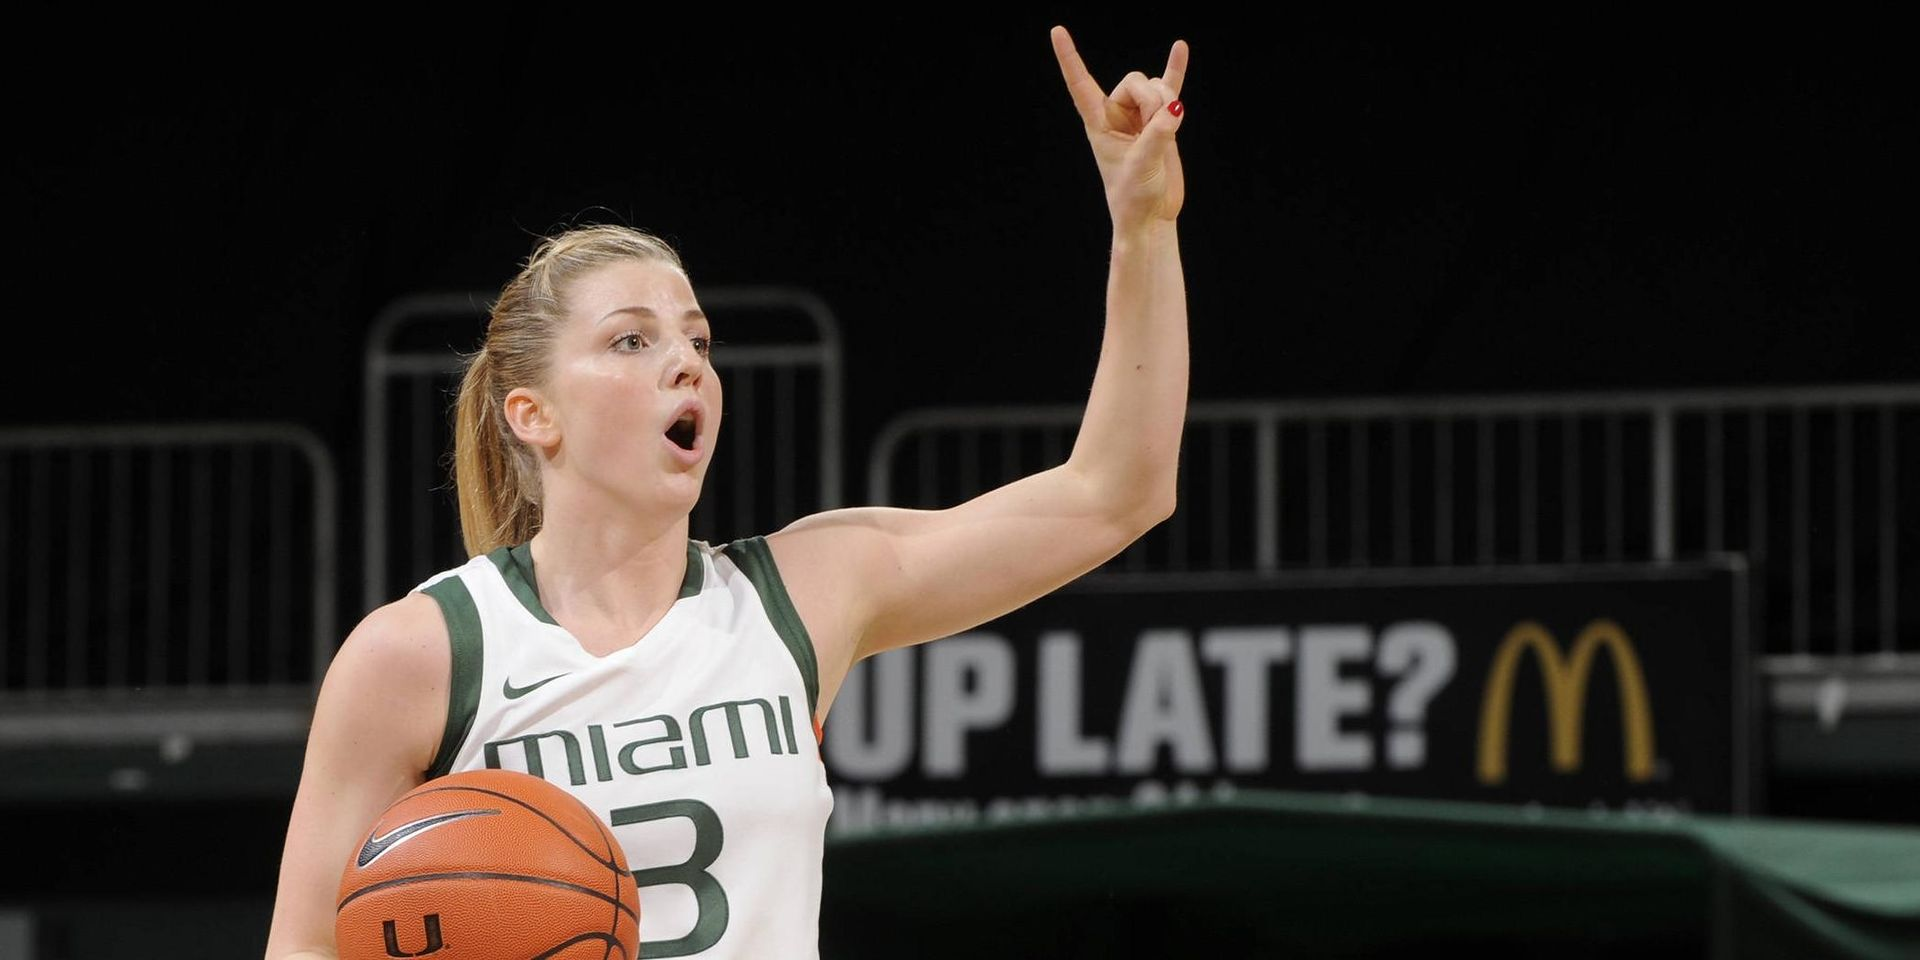 Yderstrom Nets 1000th Point in W Over Clemson